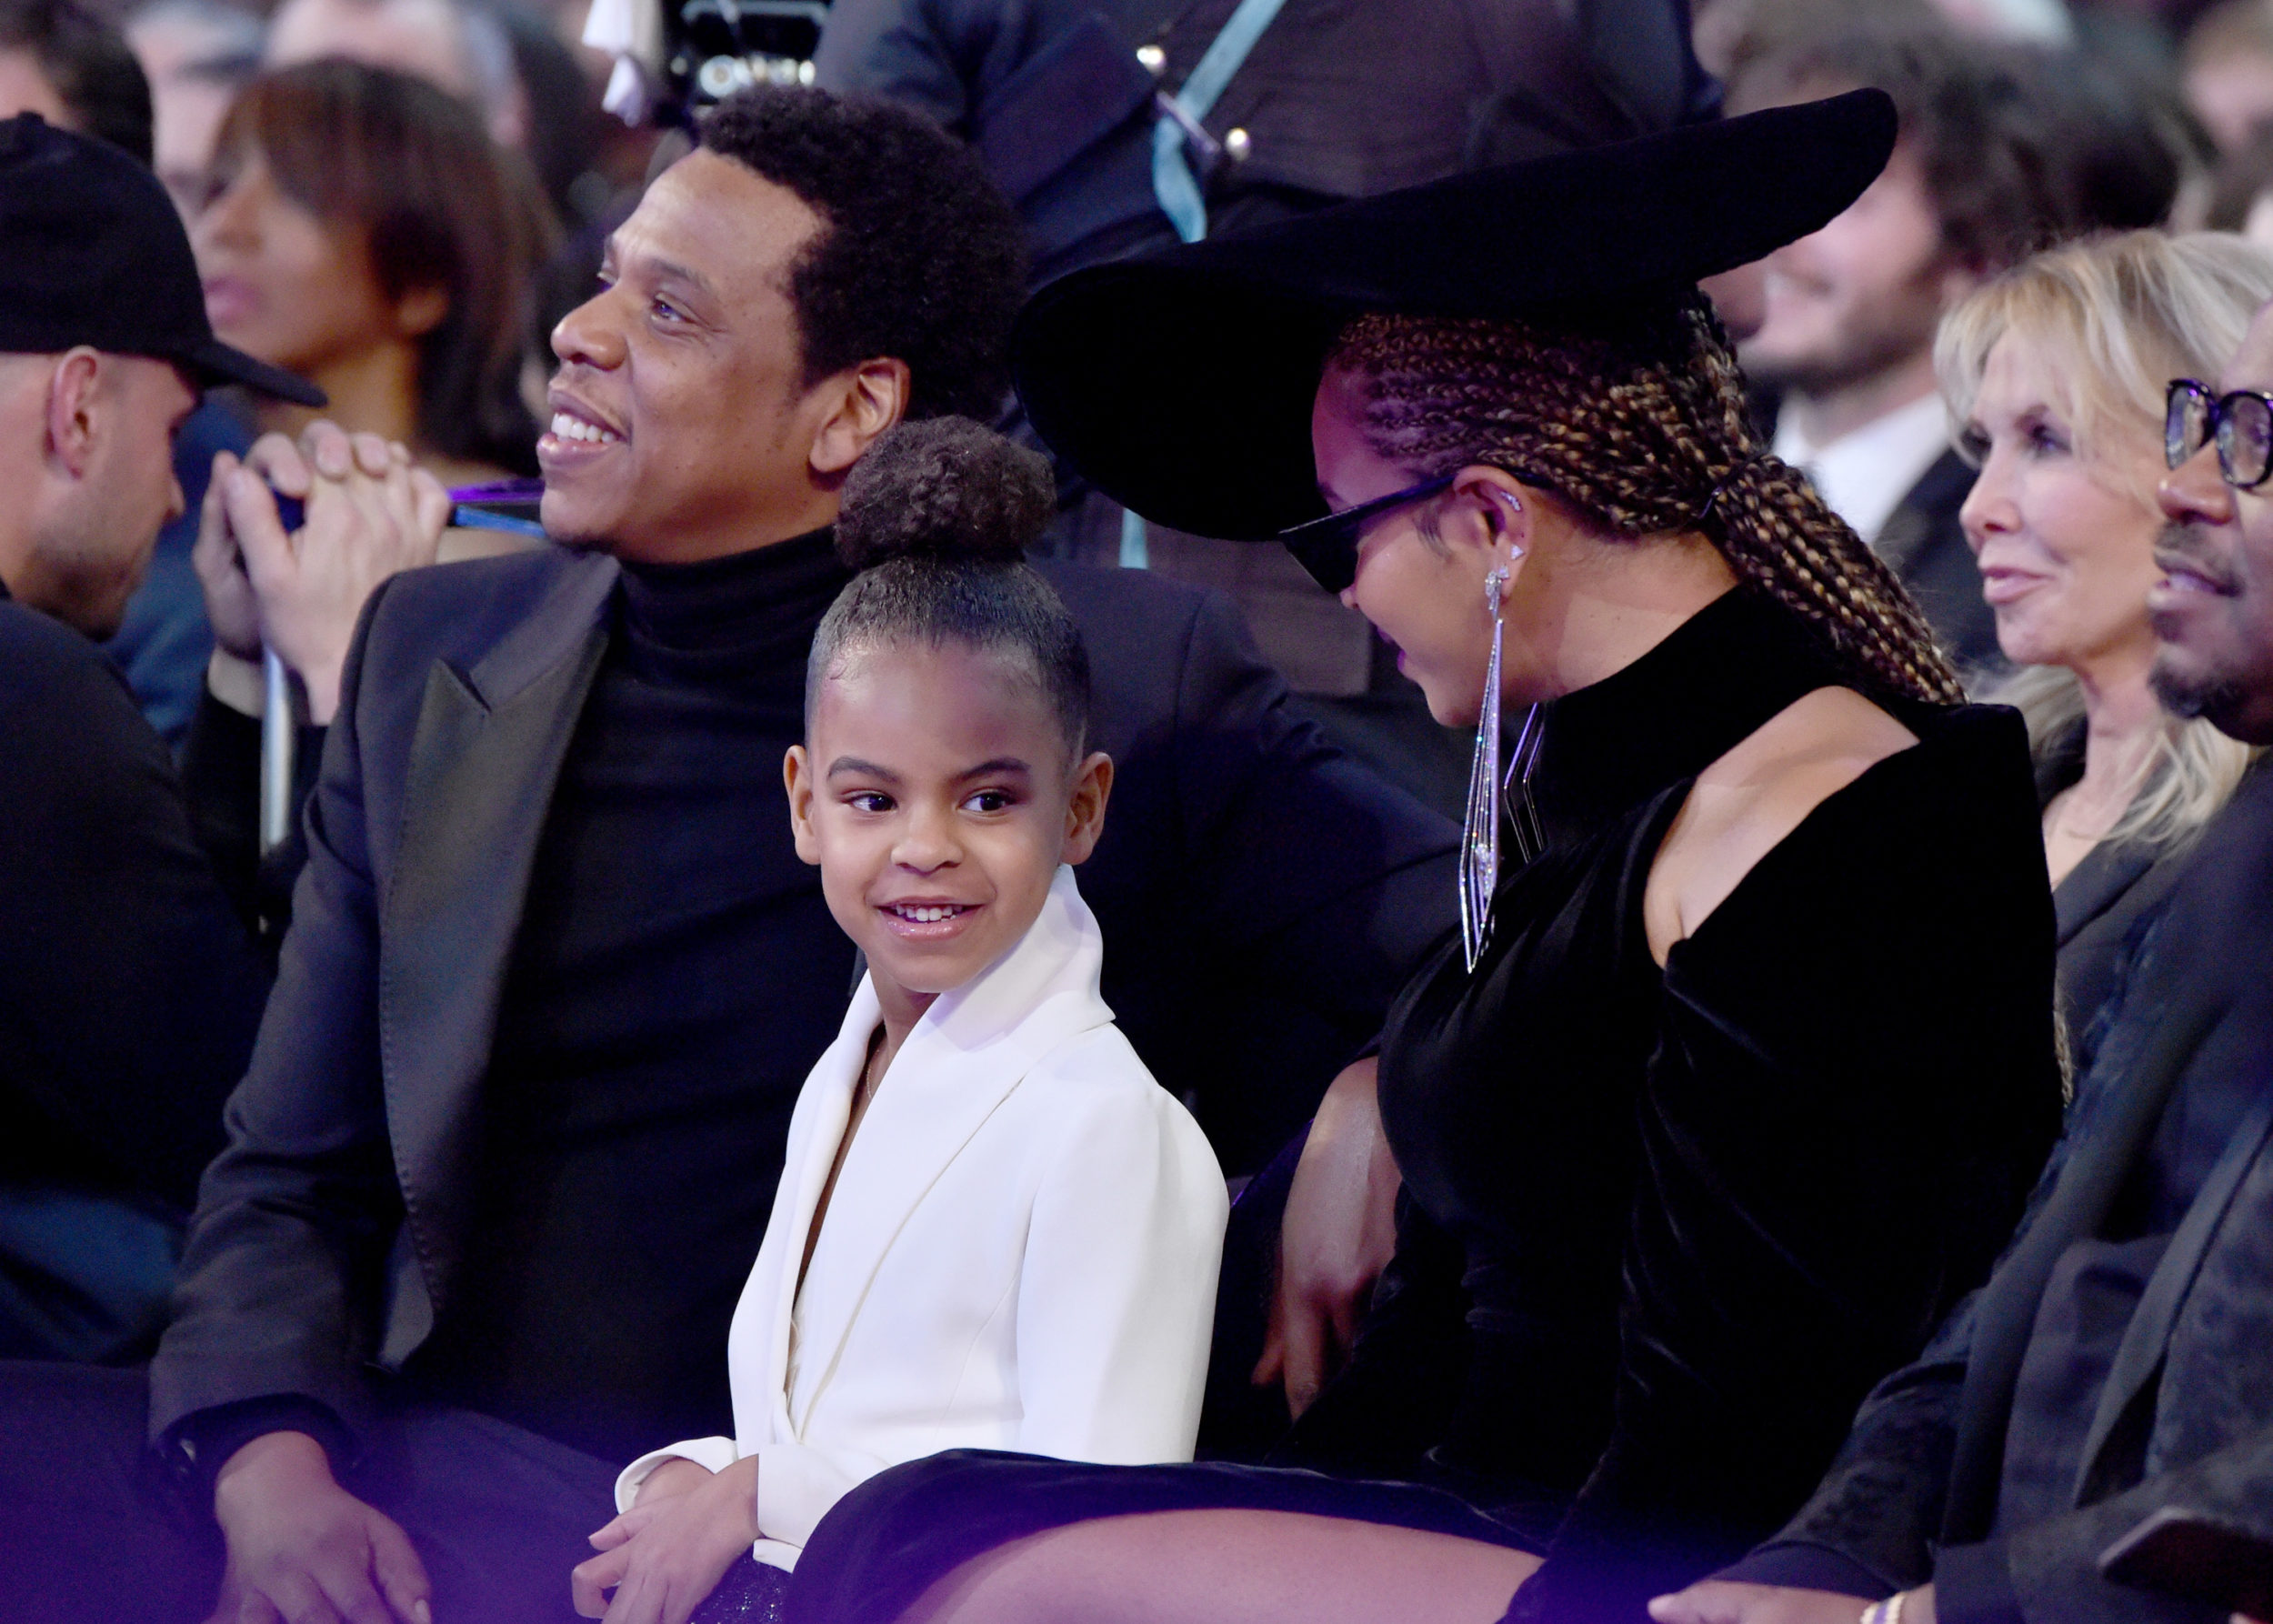 Blue Ivy bid $19,000 at an art auction like it was no big deal, and we bow down